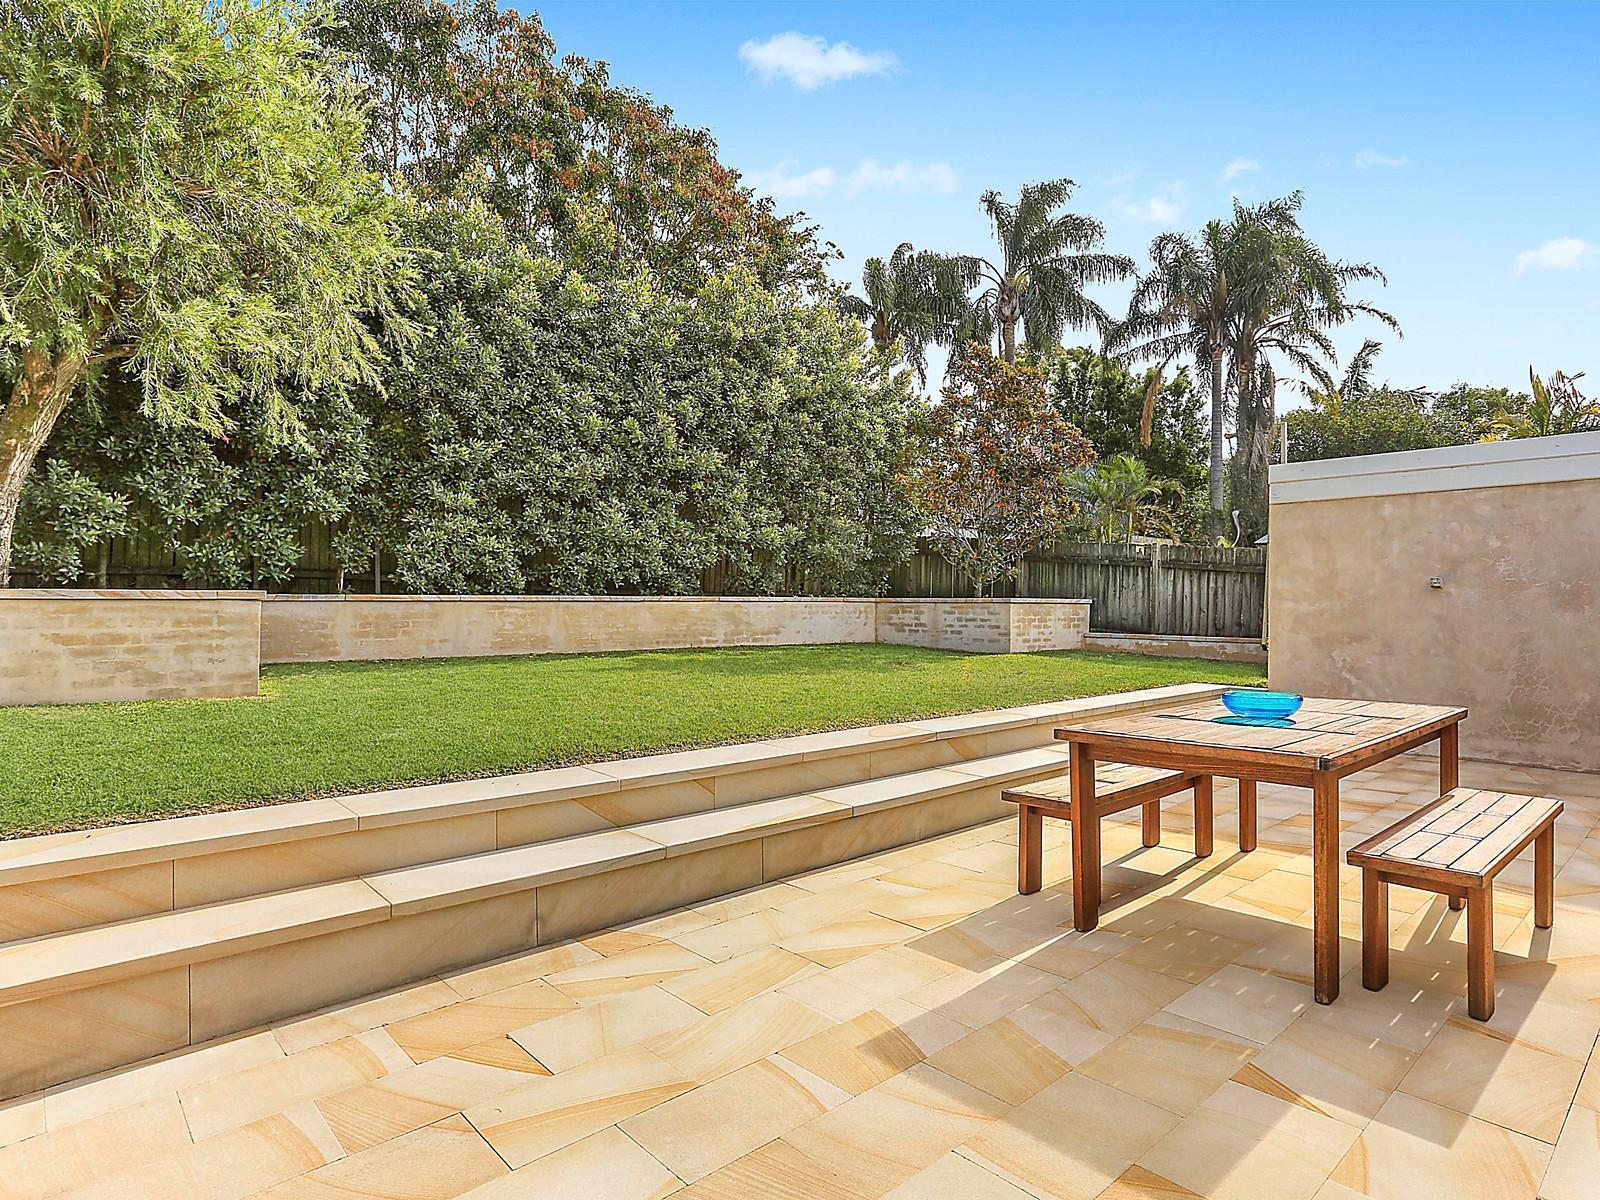 Northern Beaches Commercial Property Rentals